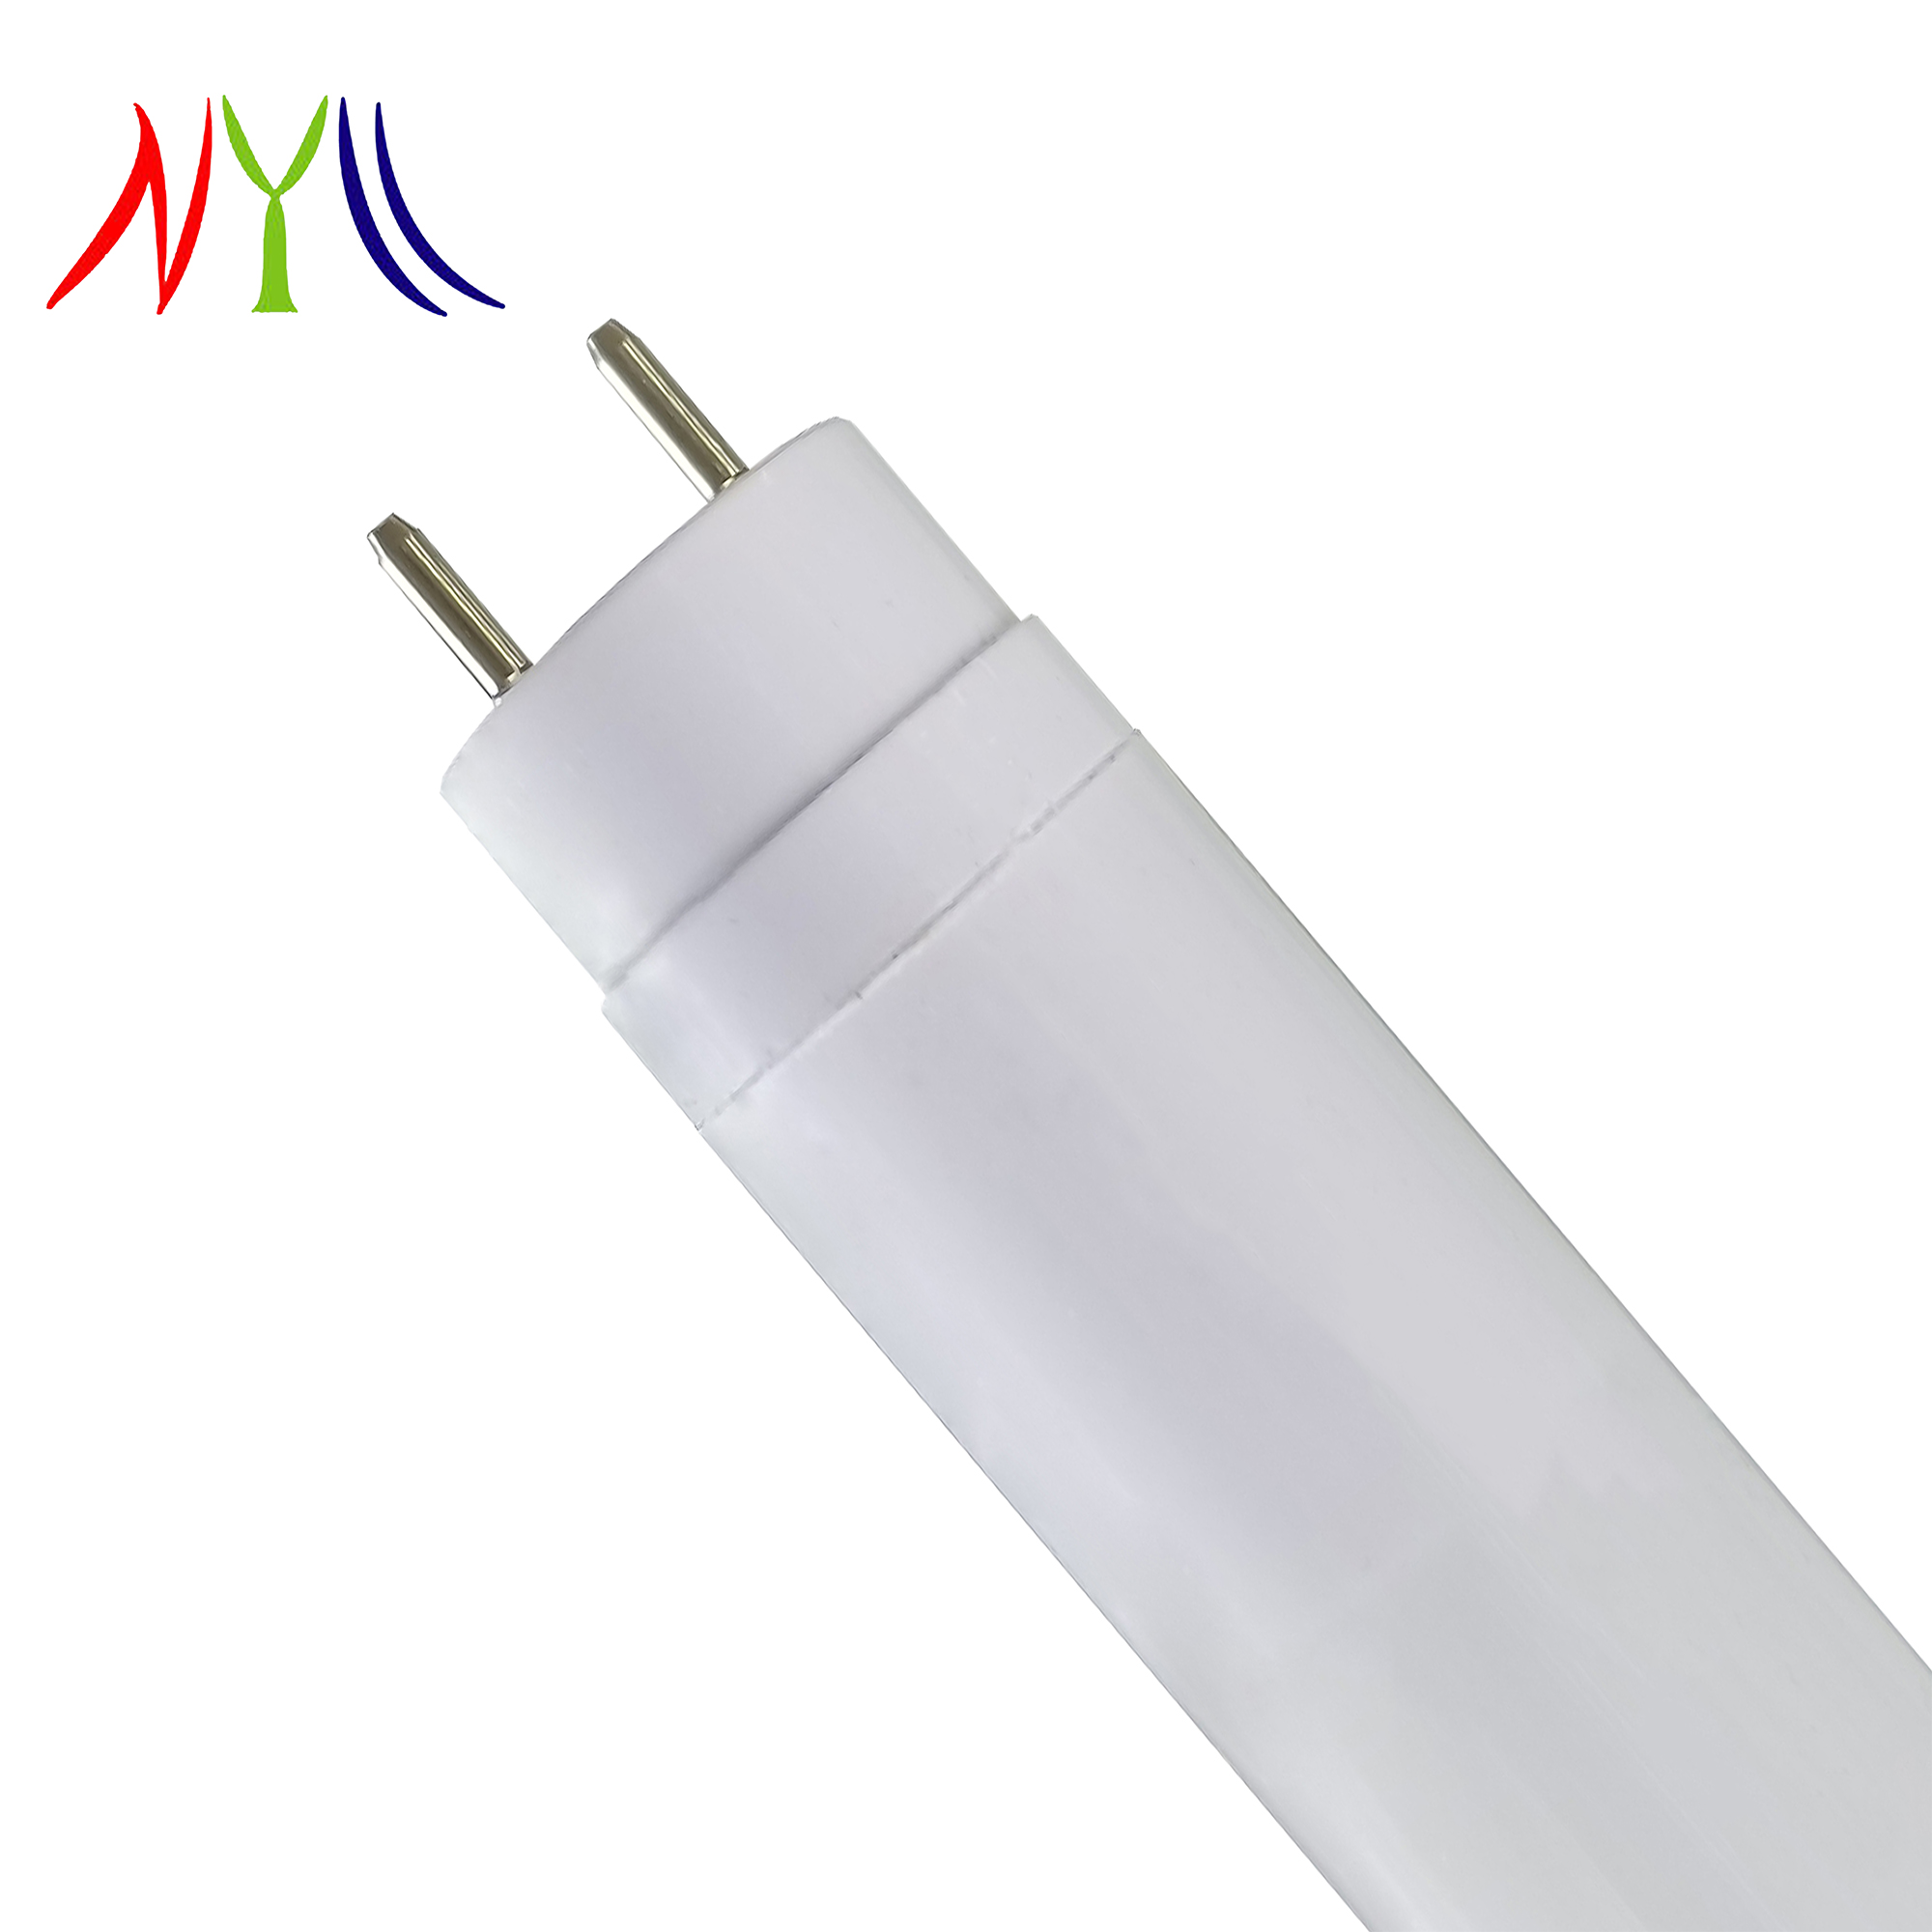 hight resolution of  15 inch led tube t8 daylight led lamp 8 watts 880 lumens fluorescent f14t12 and f14t8 replacement ballast compatible plug play led tube